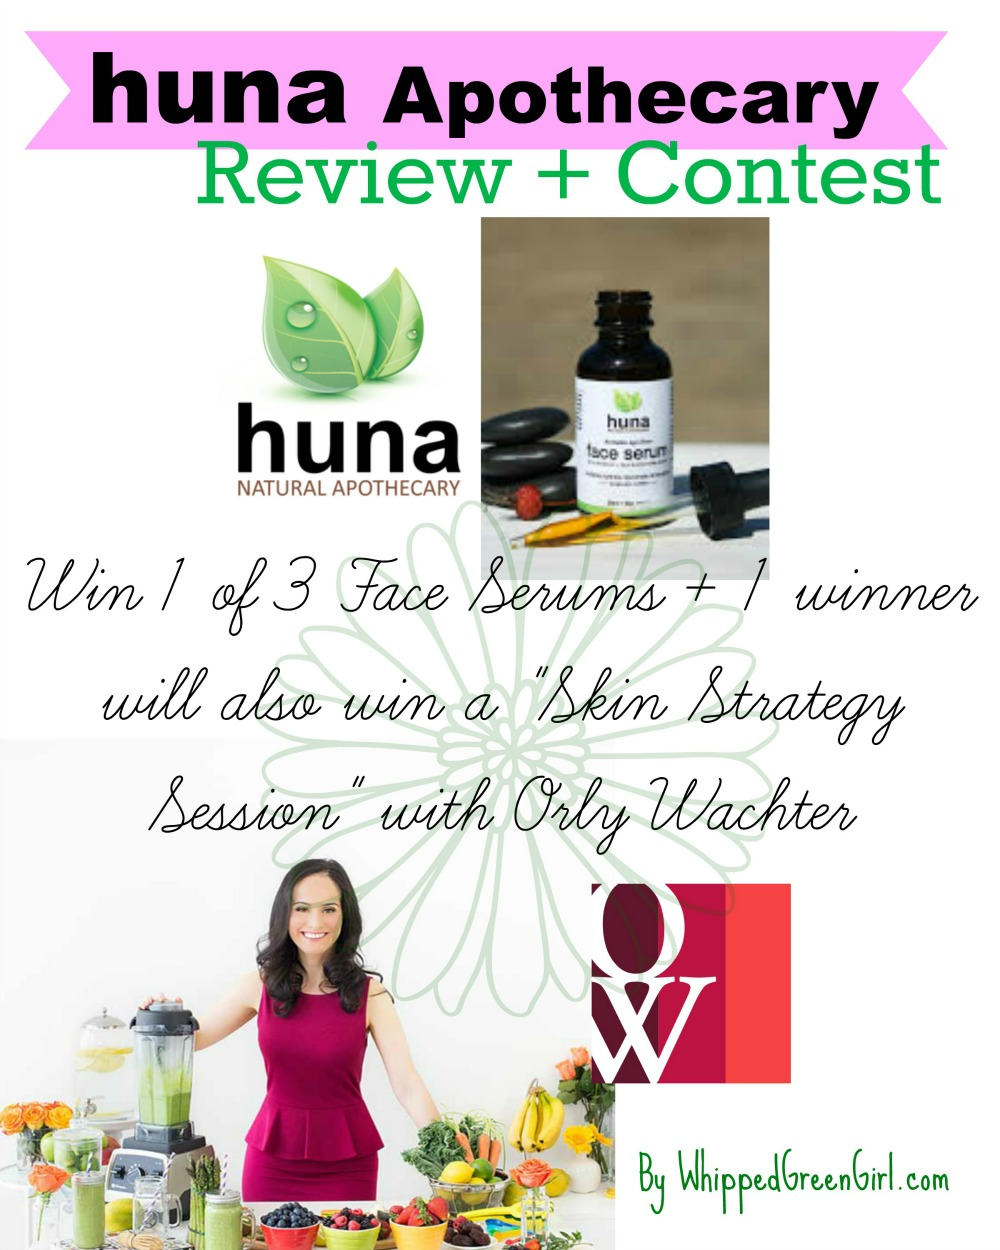 Huna Apothecary Review (By WhippedGreenGirl.com) #Contest included